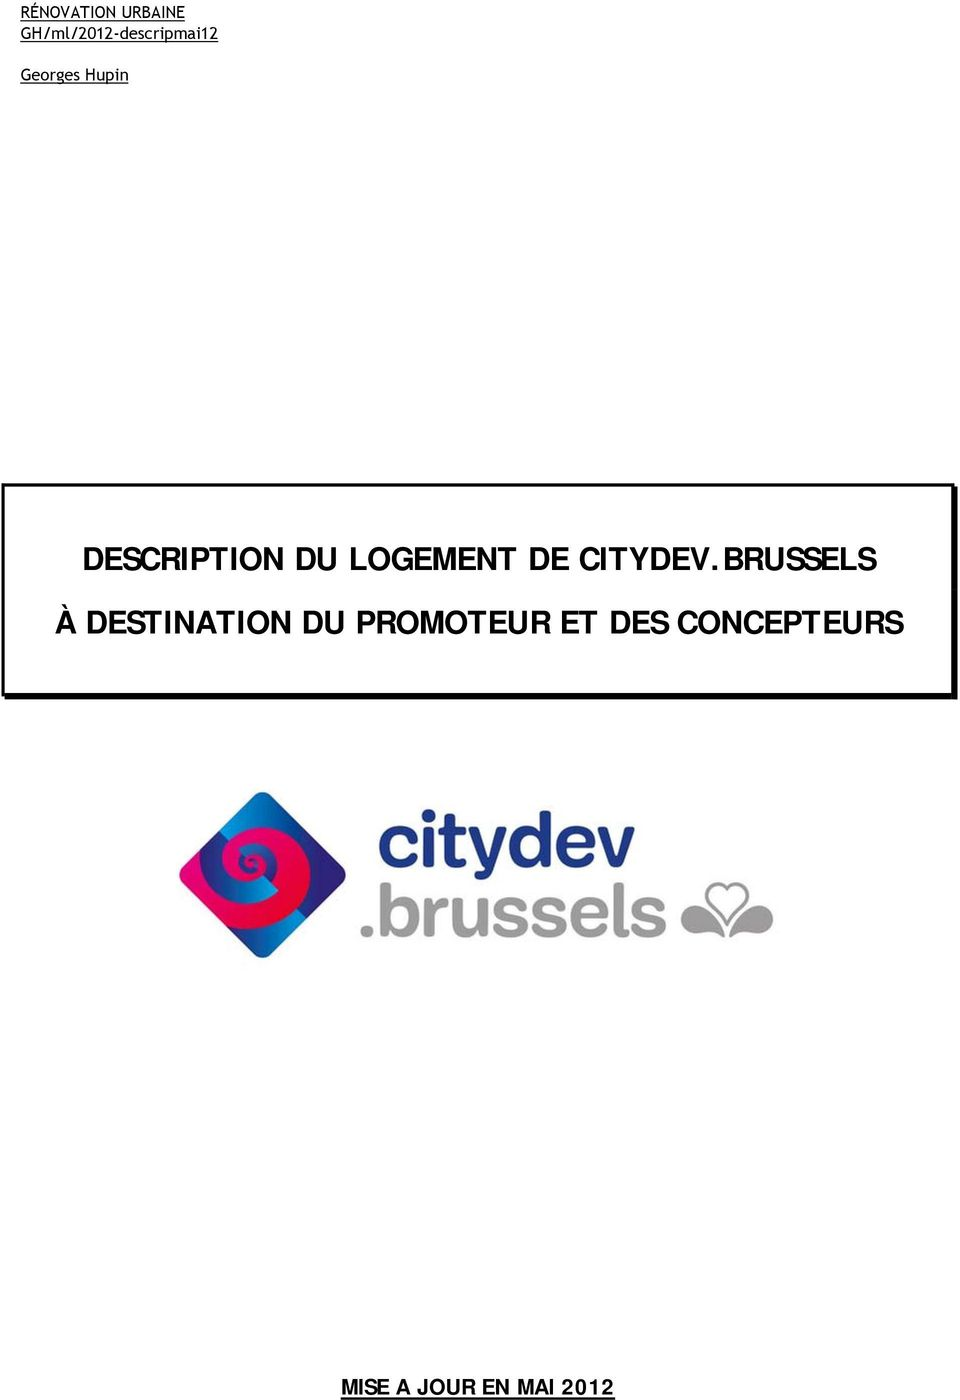 DESCRIPTION DU LOGEMENT DE CITYDEV.